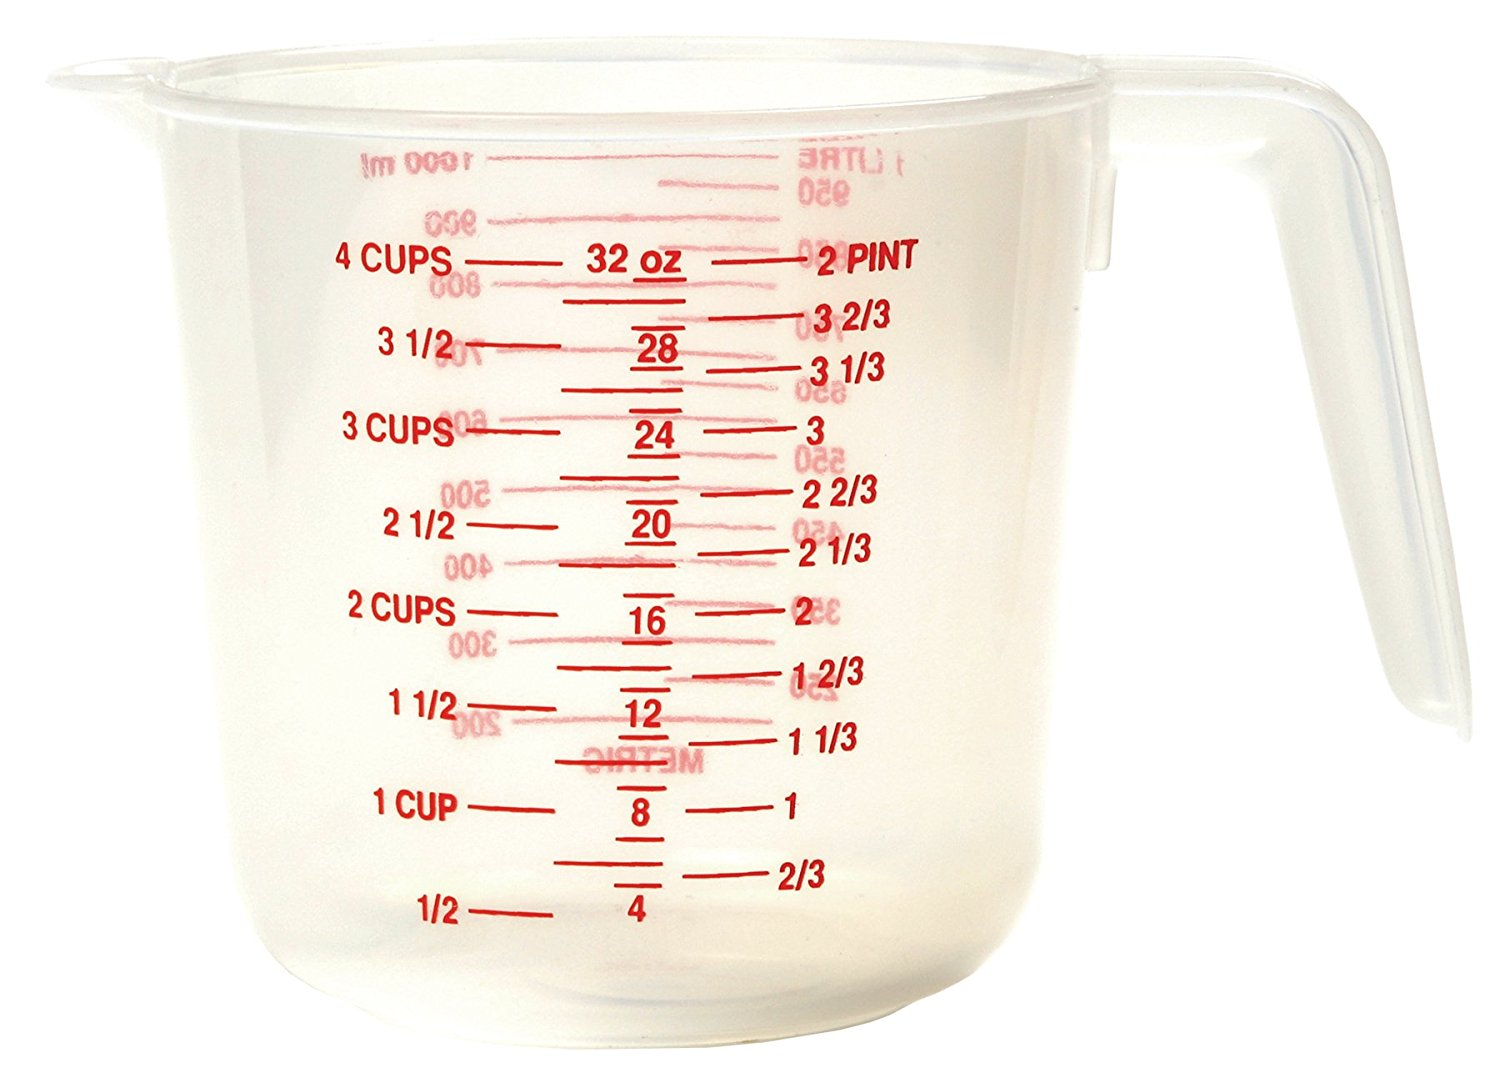 4-Cup Plastic Measuring Cup, USA, Brand Norpro by